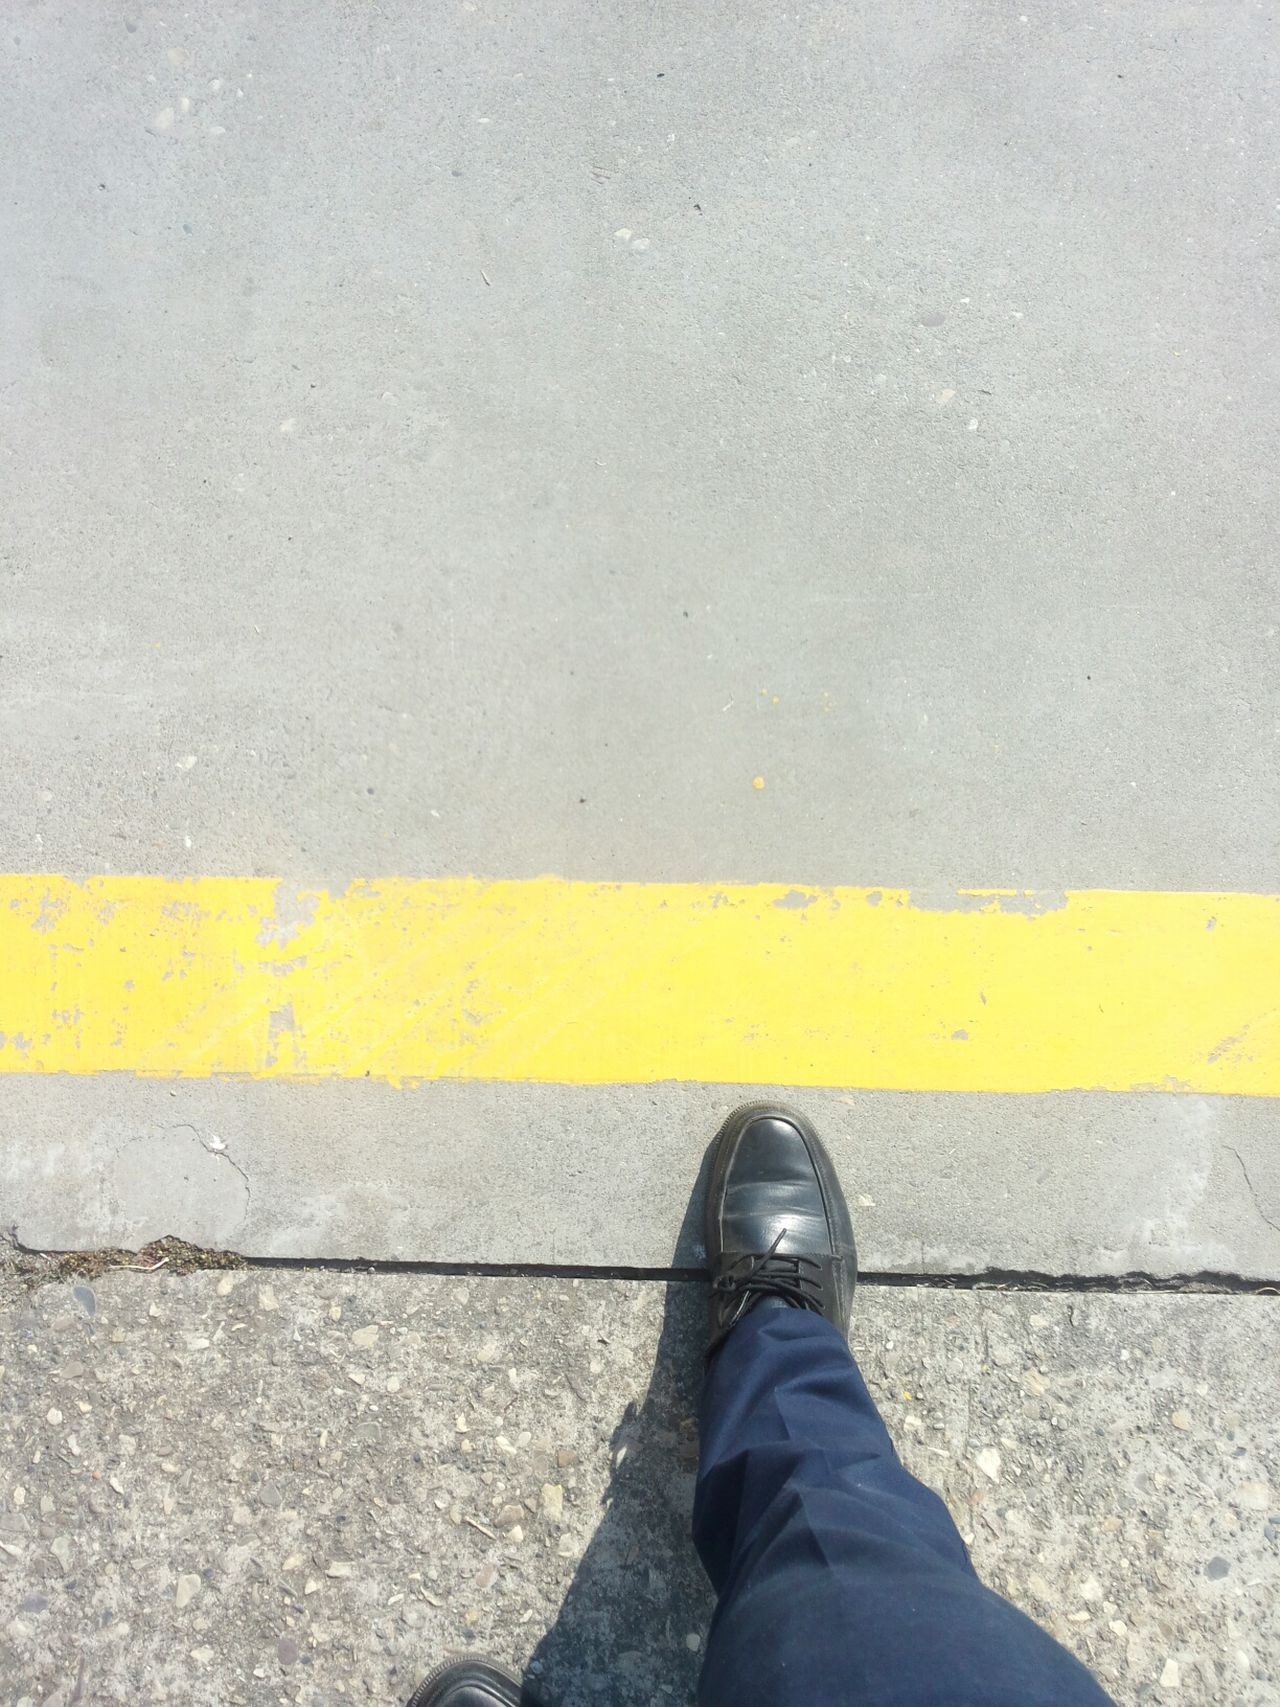 Do not cross the yellow line Low Section Shoe Human Leg Yellow One Person Human Body Part Standing Real People Personal Perspective Unrecognizable Person Men Road Lifestyles Day Outdoors Leisure Activity One Man Only Close-up People Adult Samsungphotography Shaping The Future. Together. Adapted To The City The Next Step Yellow Line